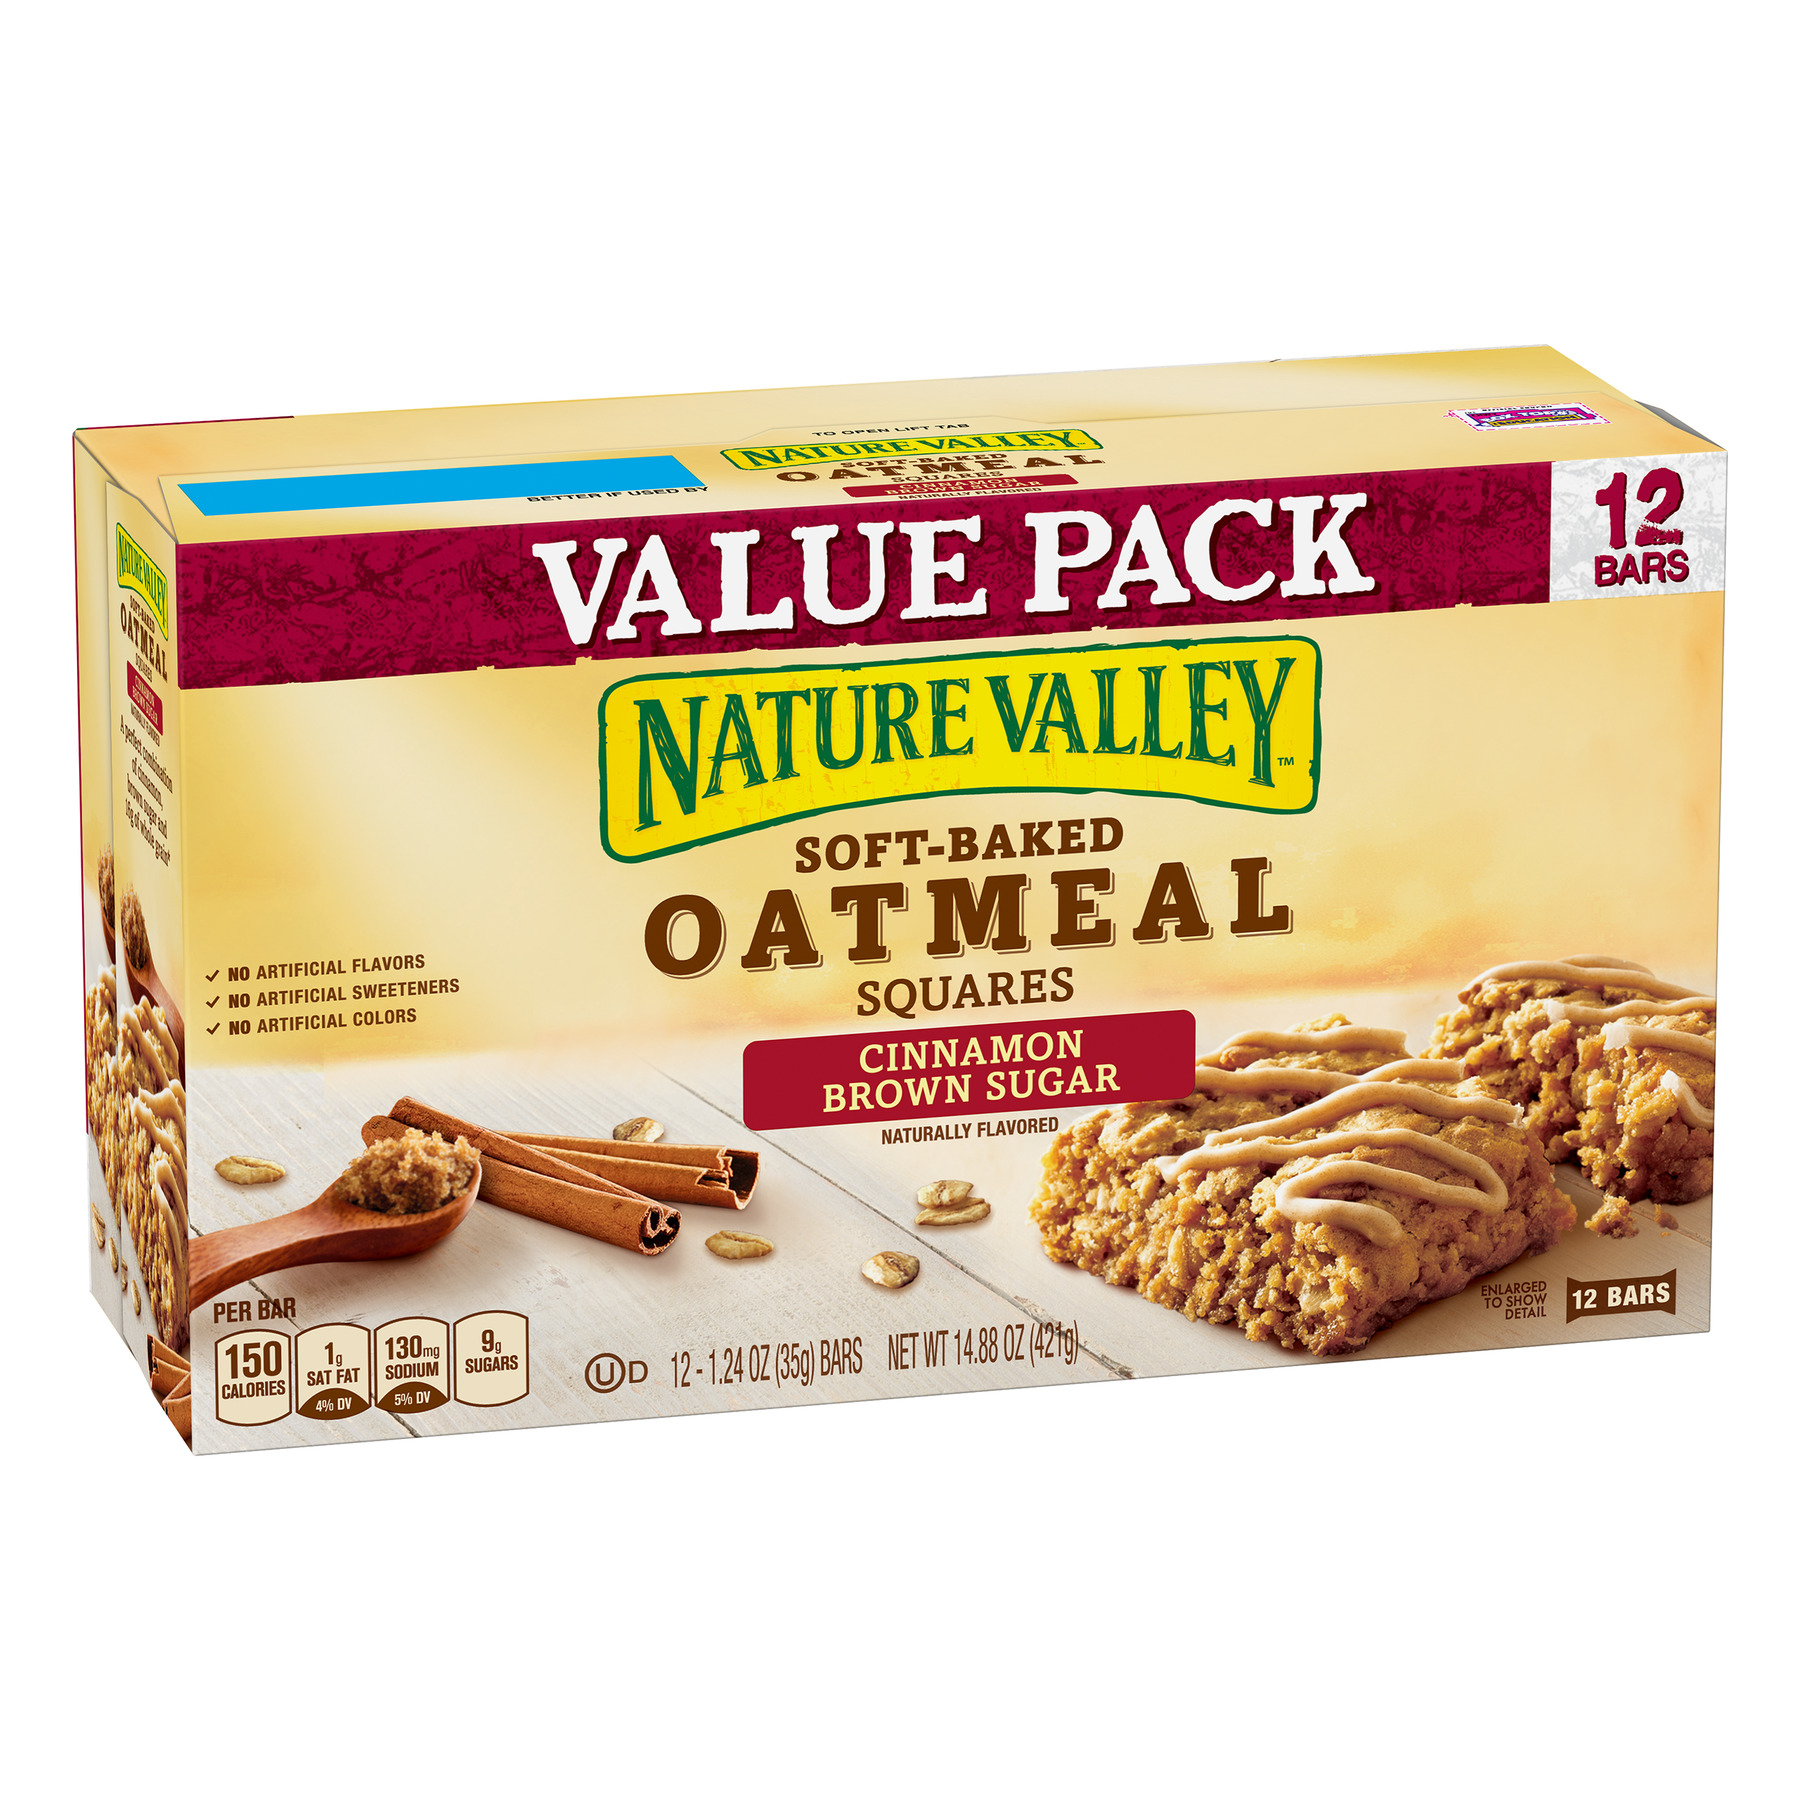 Nature Valley Oatmeal Squares Cinnamon Brown Sugar 12 Bars